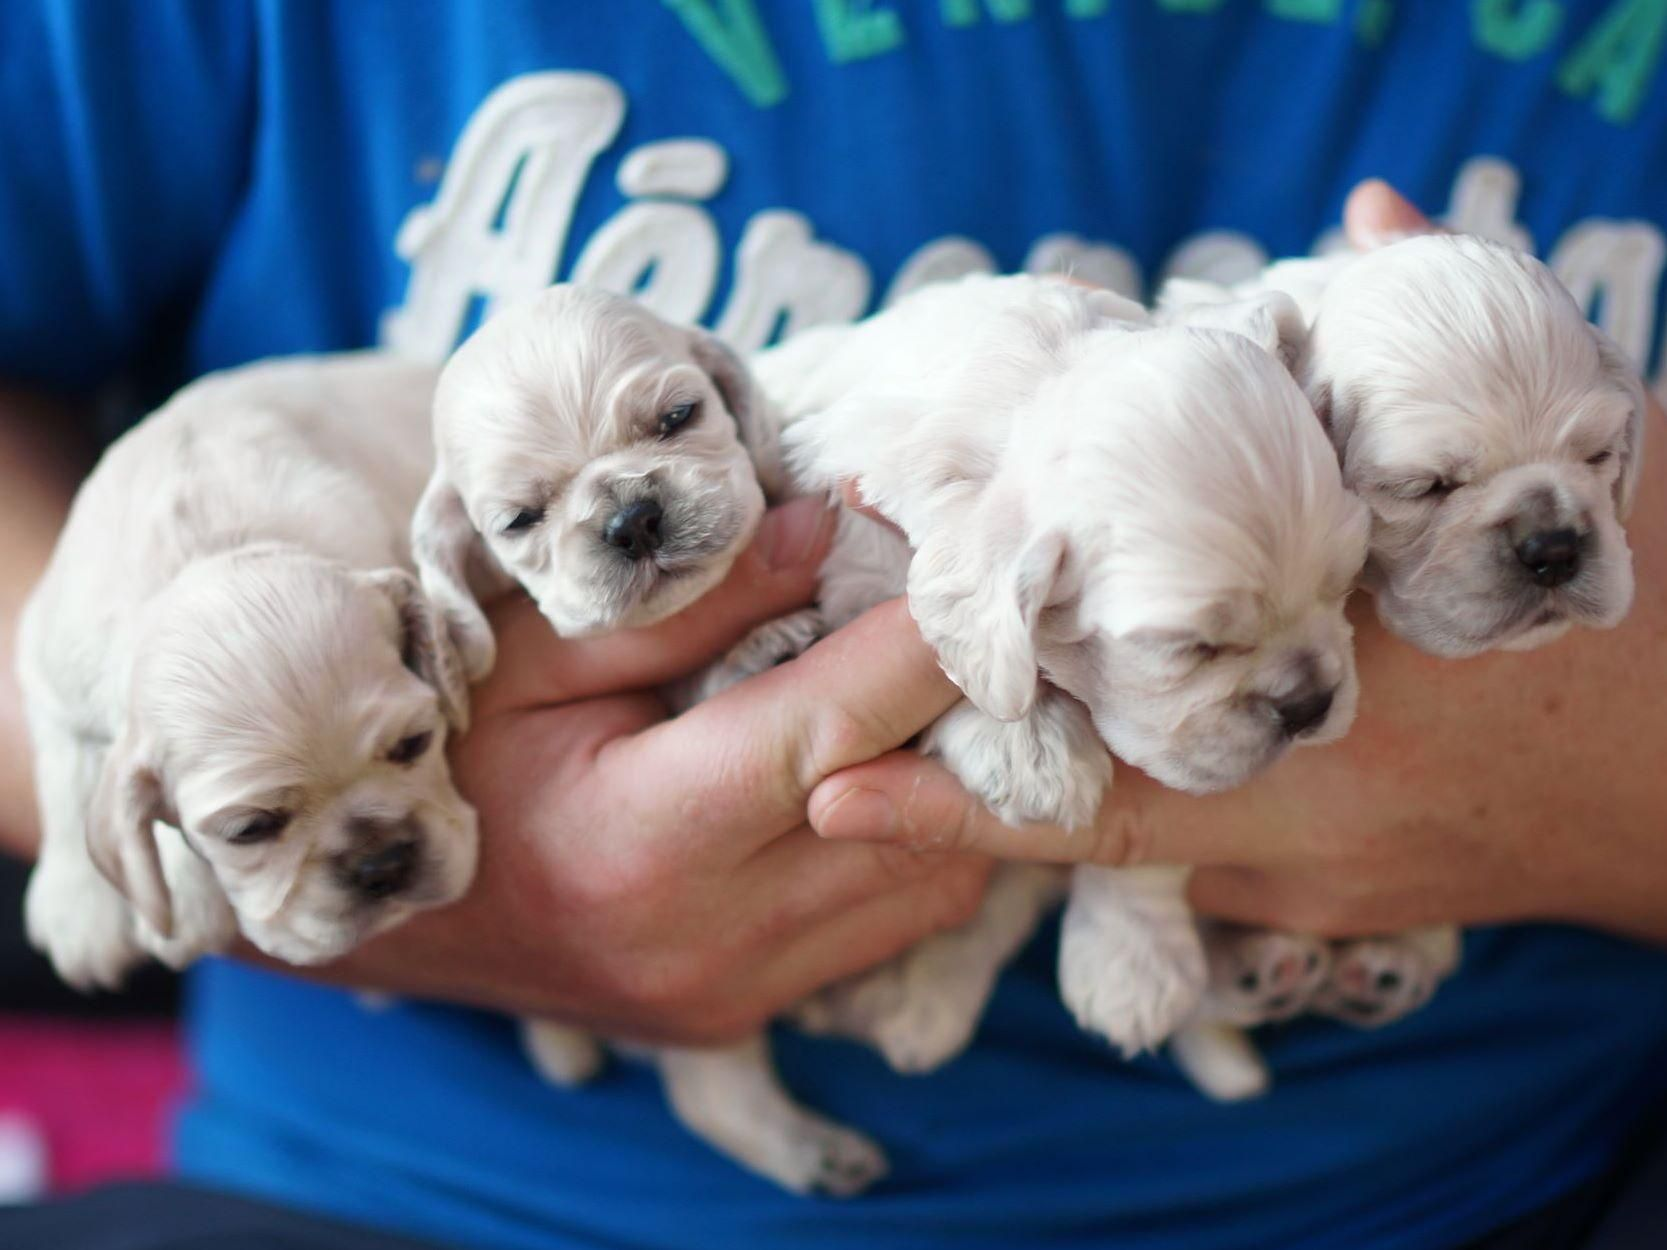 Ania S Cockers Has Puppies For Sale On Akc Puppyfinder Cocker Spaniel Puppies Spaniel Puppies For Sale Spaniel Puppies